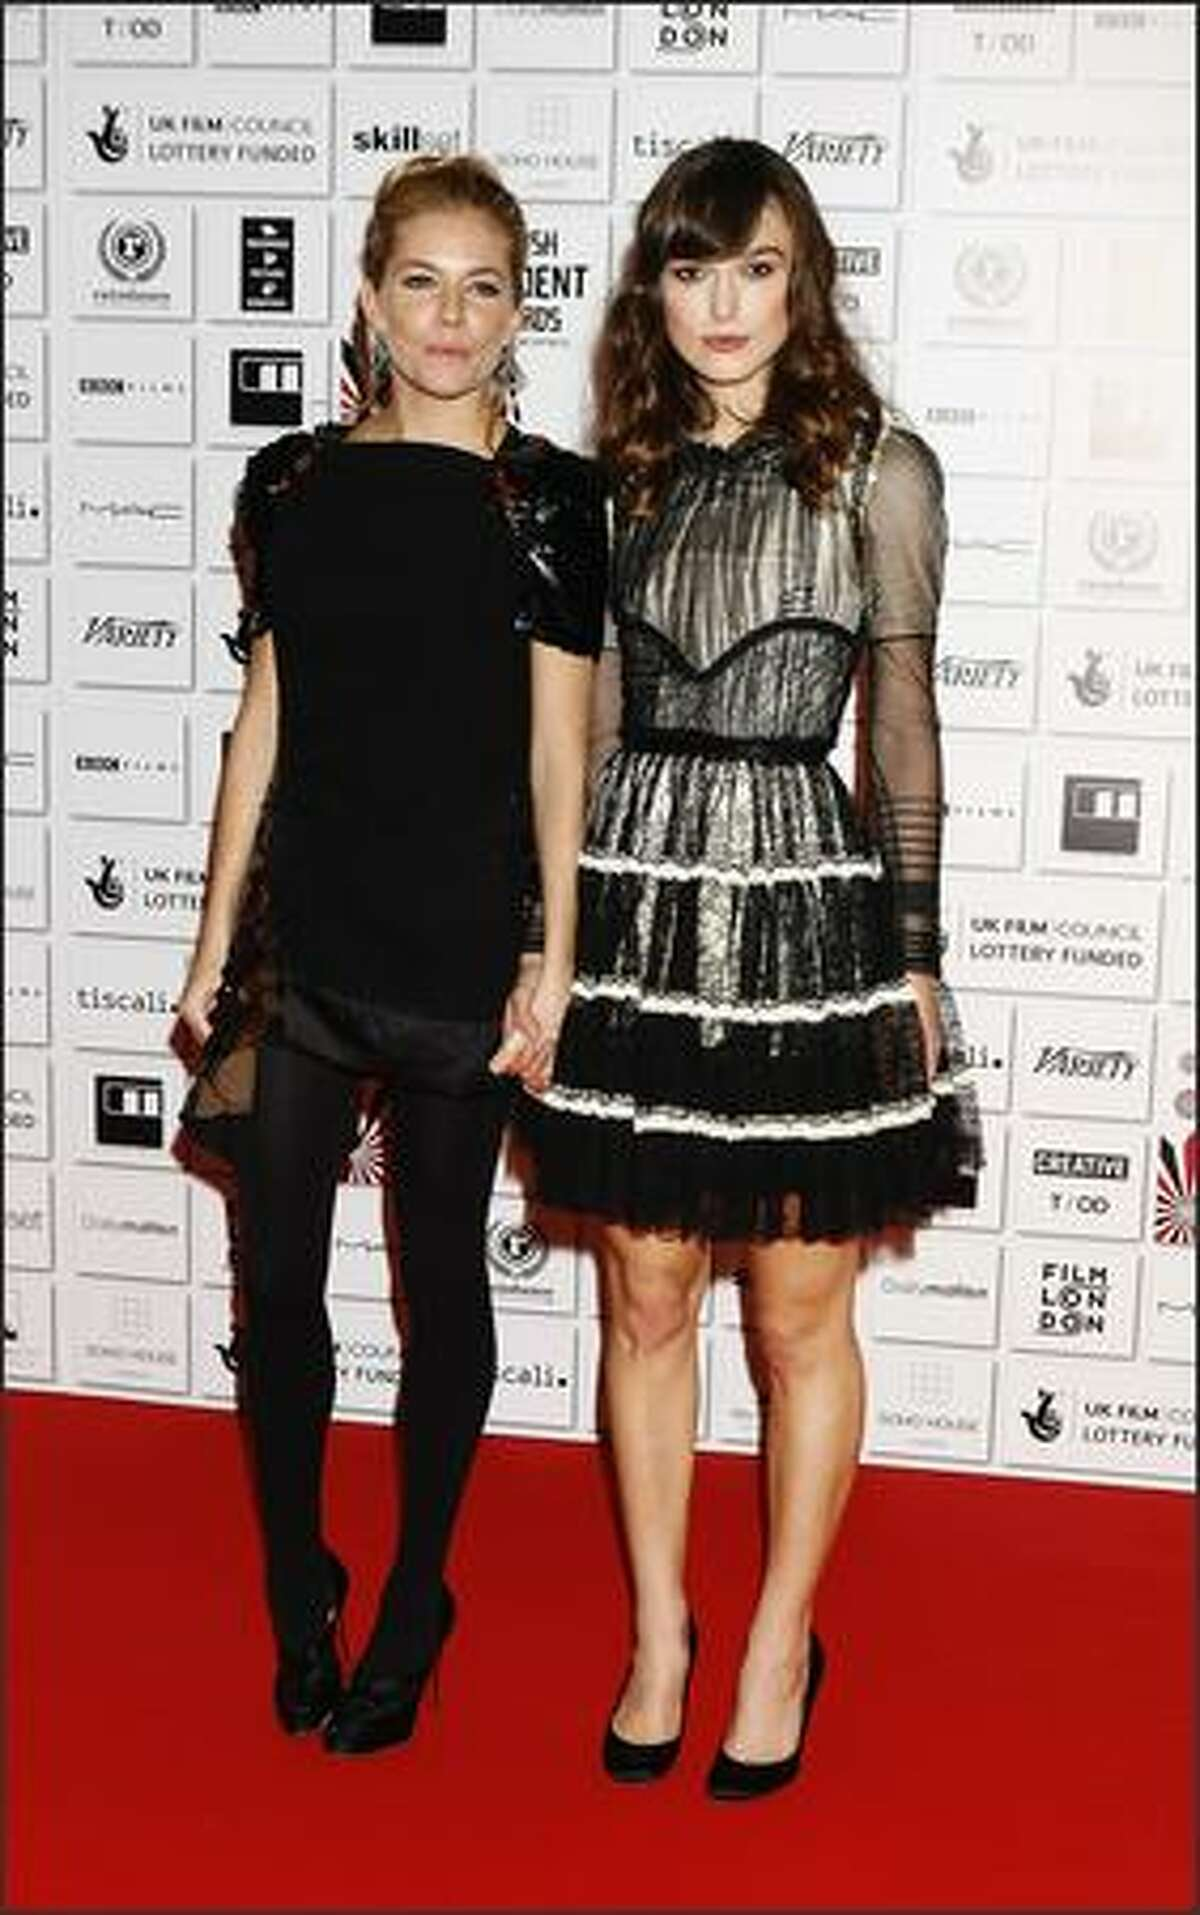 Sienner Miller and Keira Knightley arrive at the British Independant Film Awards 2008 at Old Billingsgate on Sunday in London.